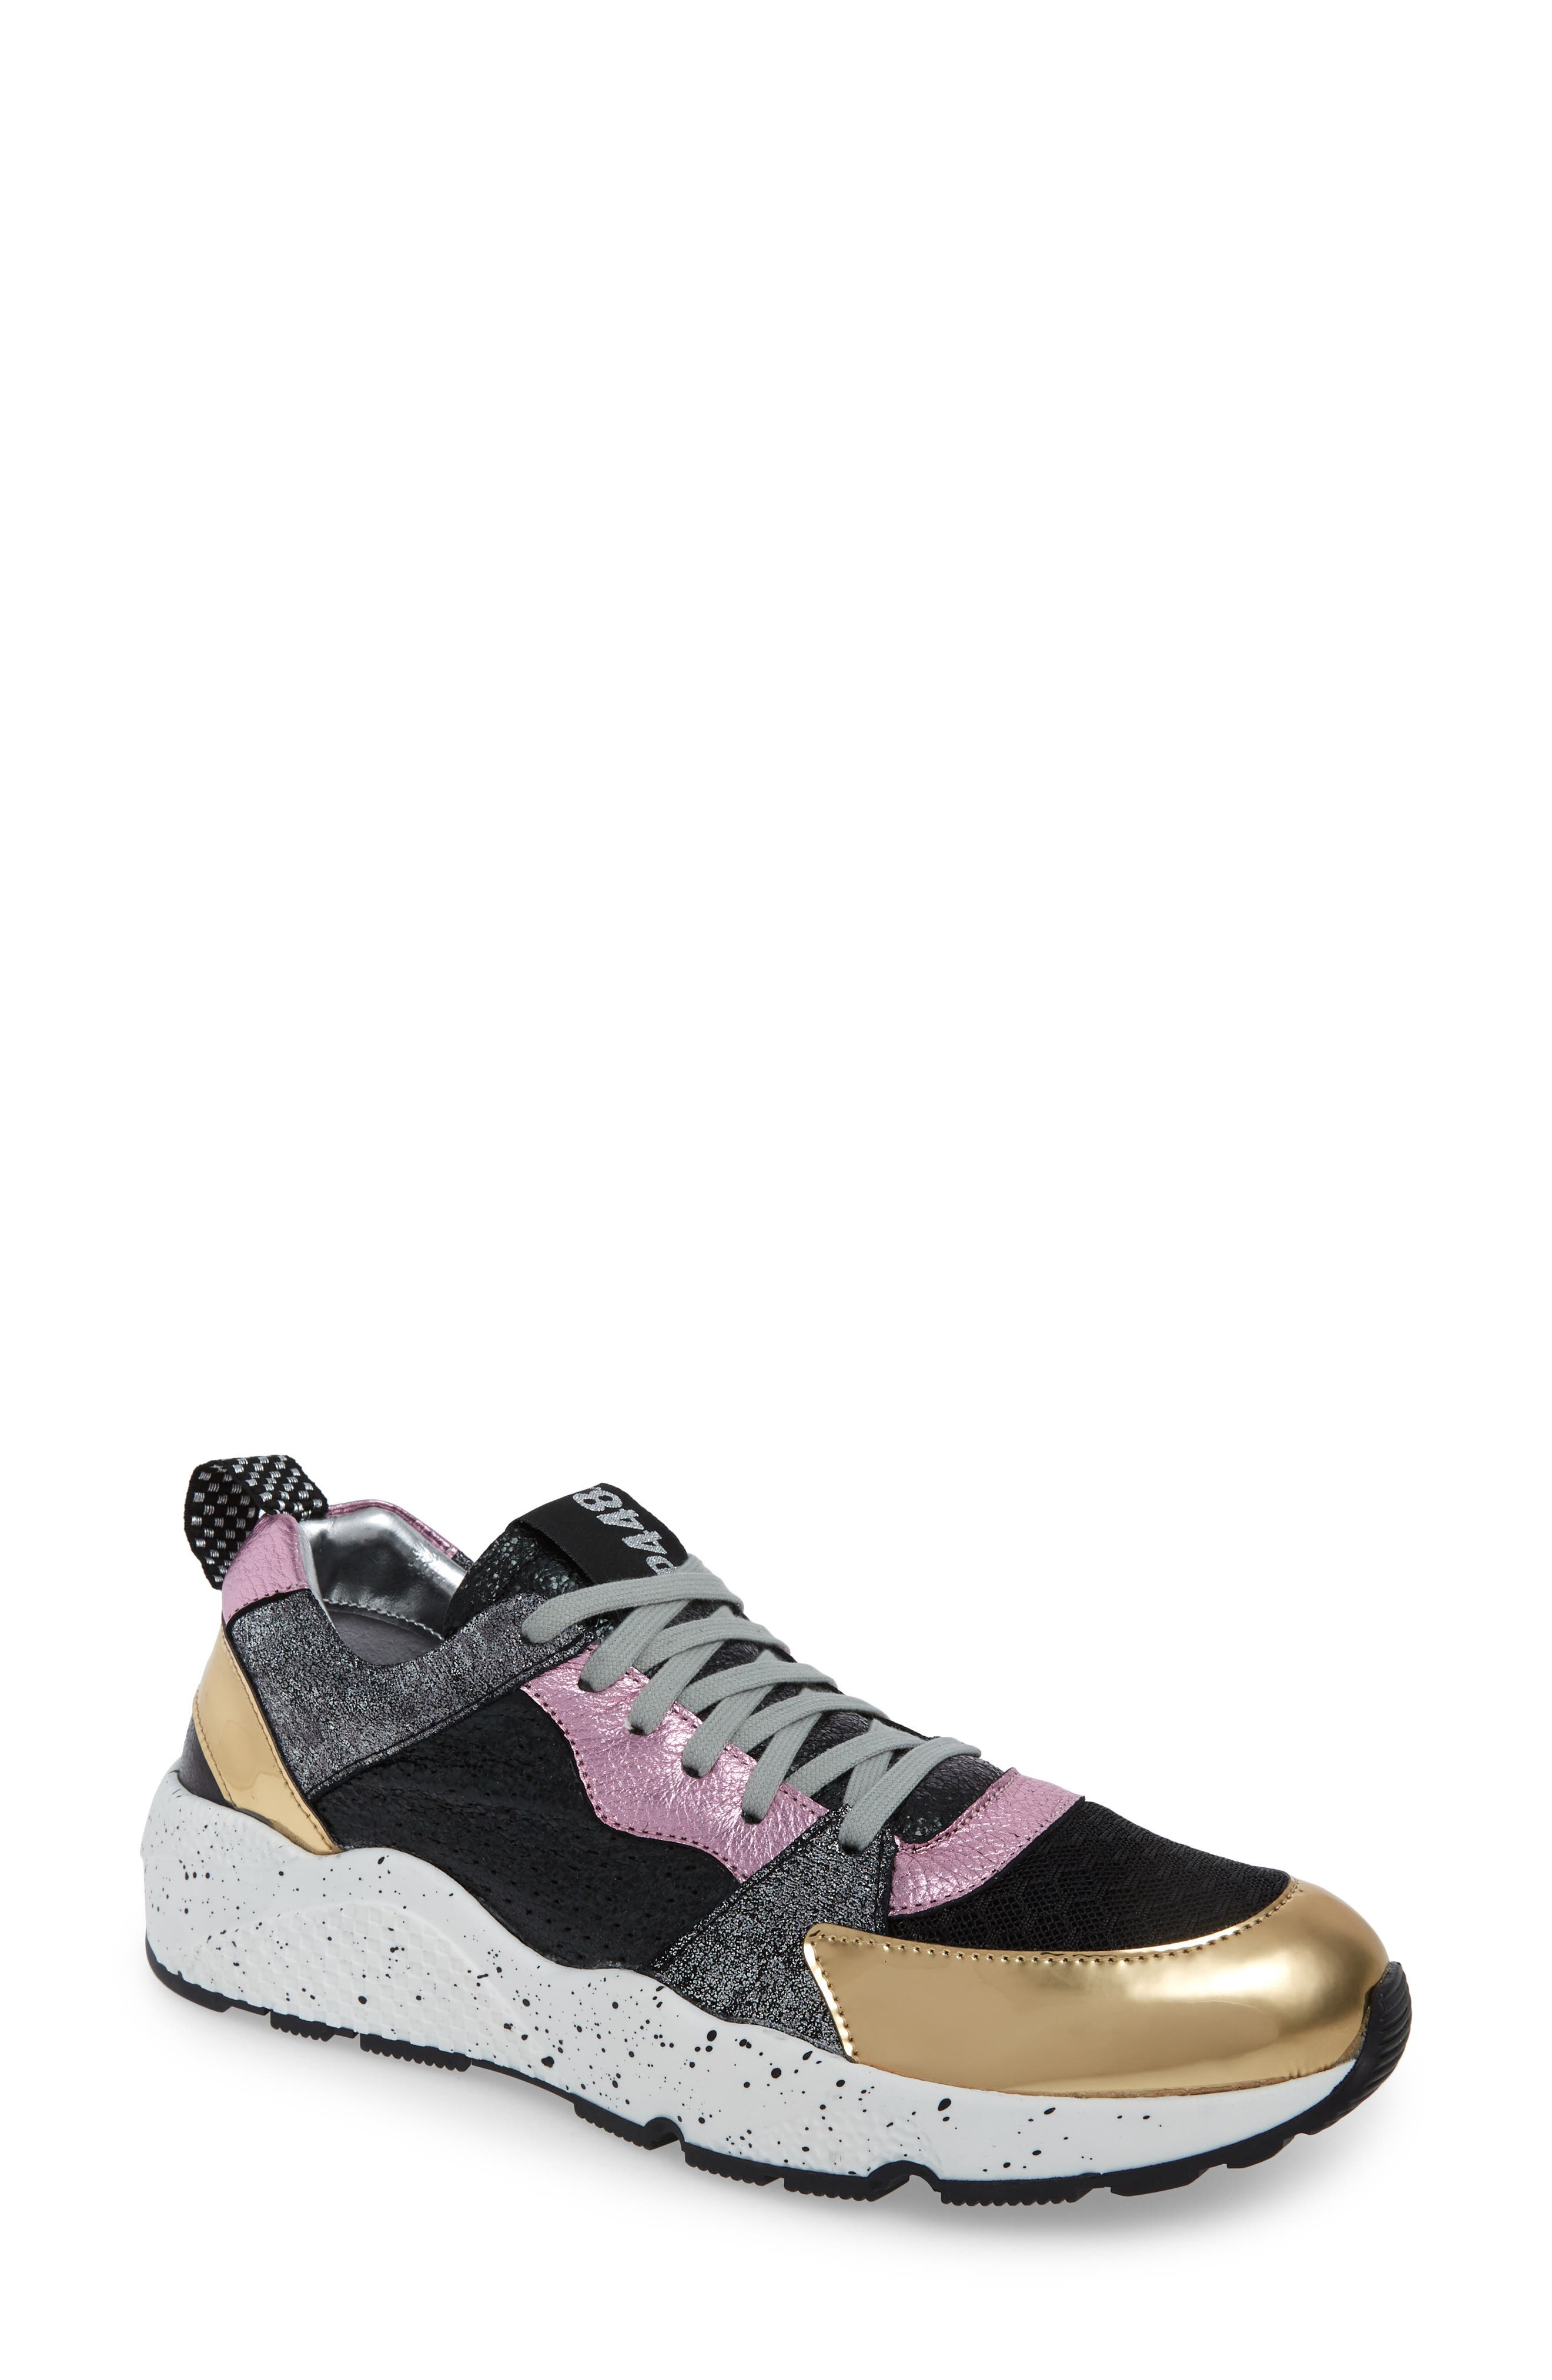 P448 Women'S Alex Mixed Leather Lace-Up Sneakers in Pink/ Black Shine